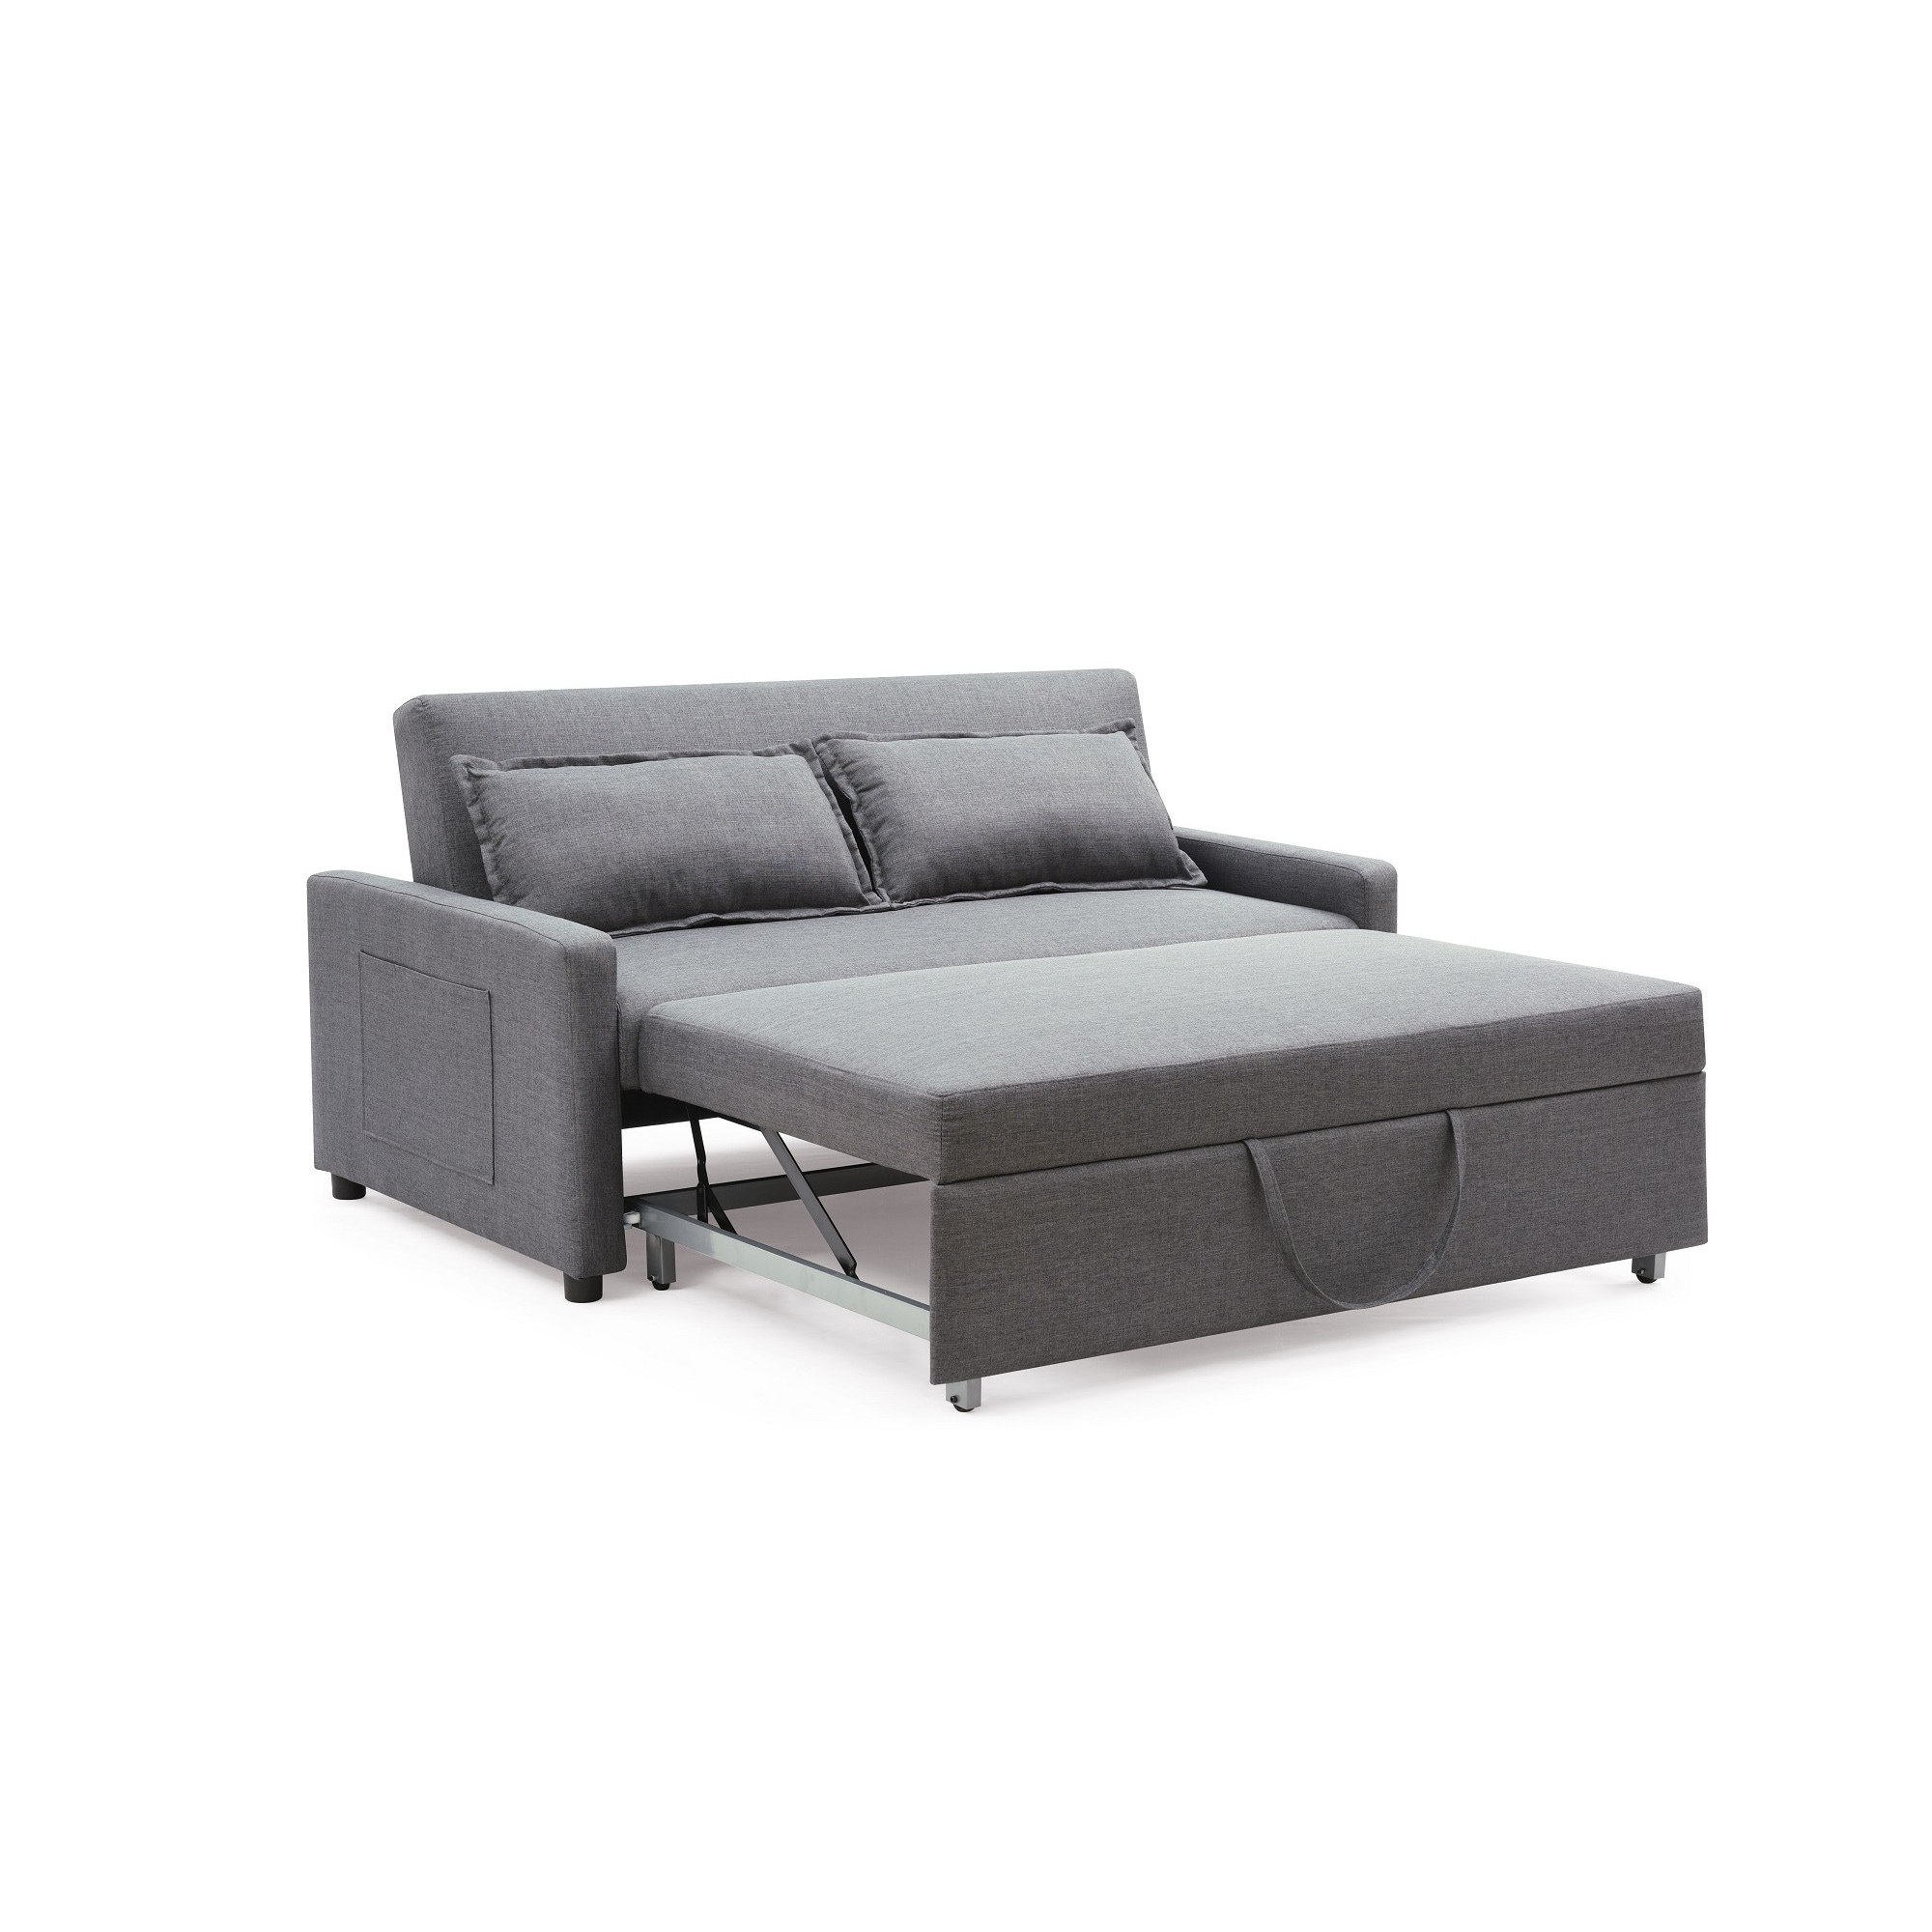 Modern Convertible Sofa with Pullout Bed | Overstock.com Shopping - The  Best Deals on As Is